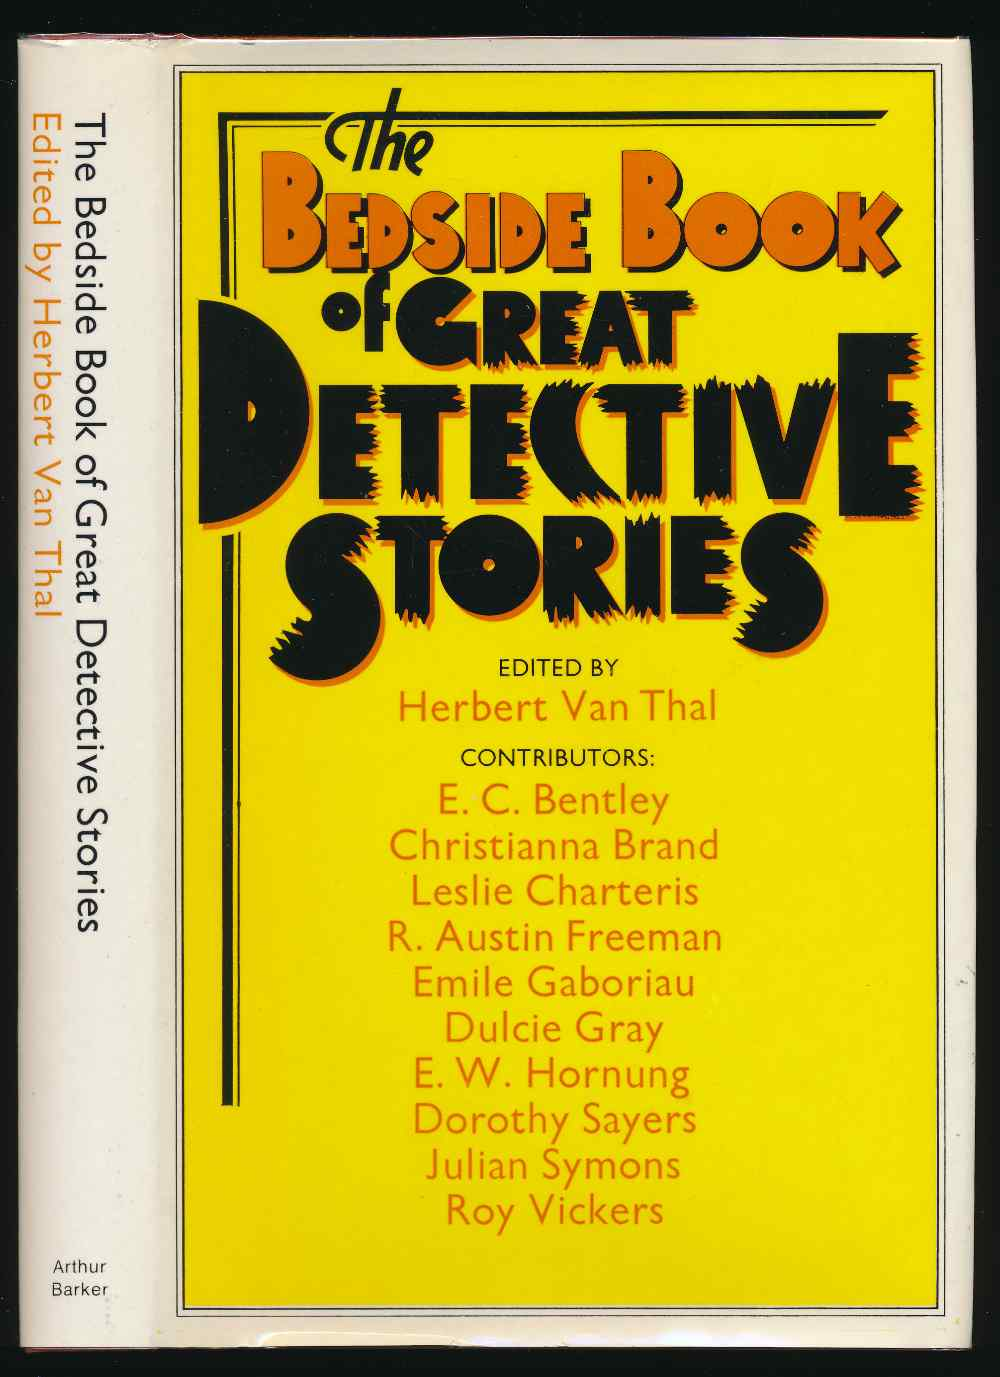 The bedside book of great detective stories